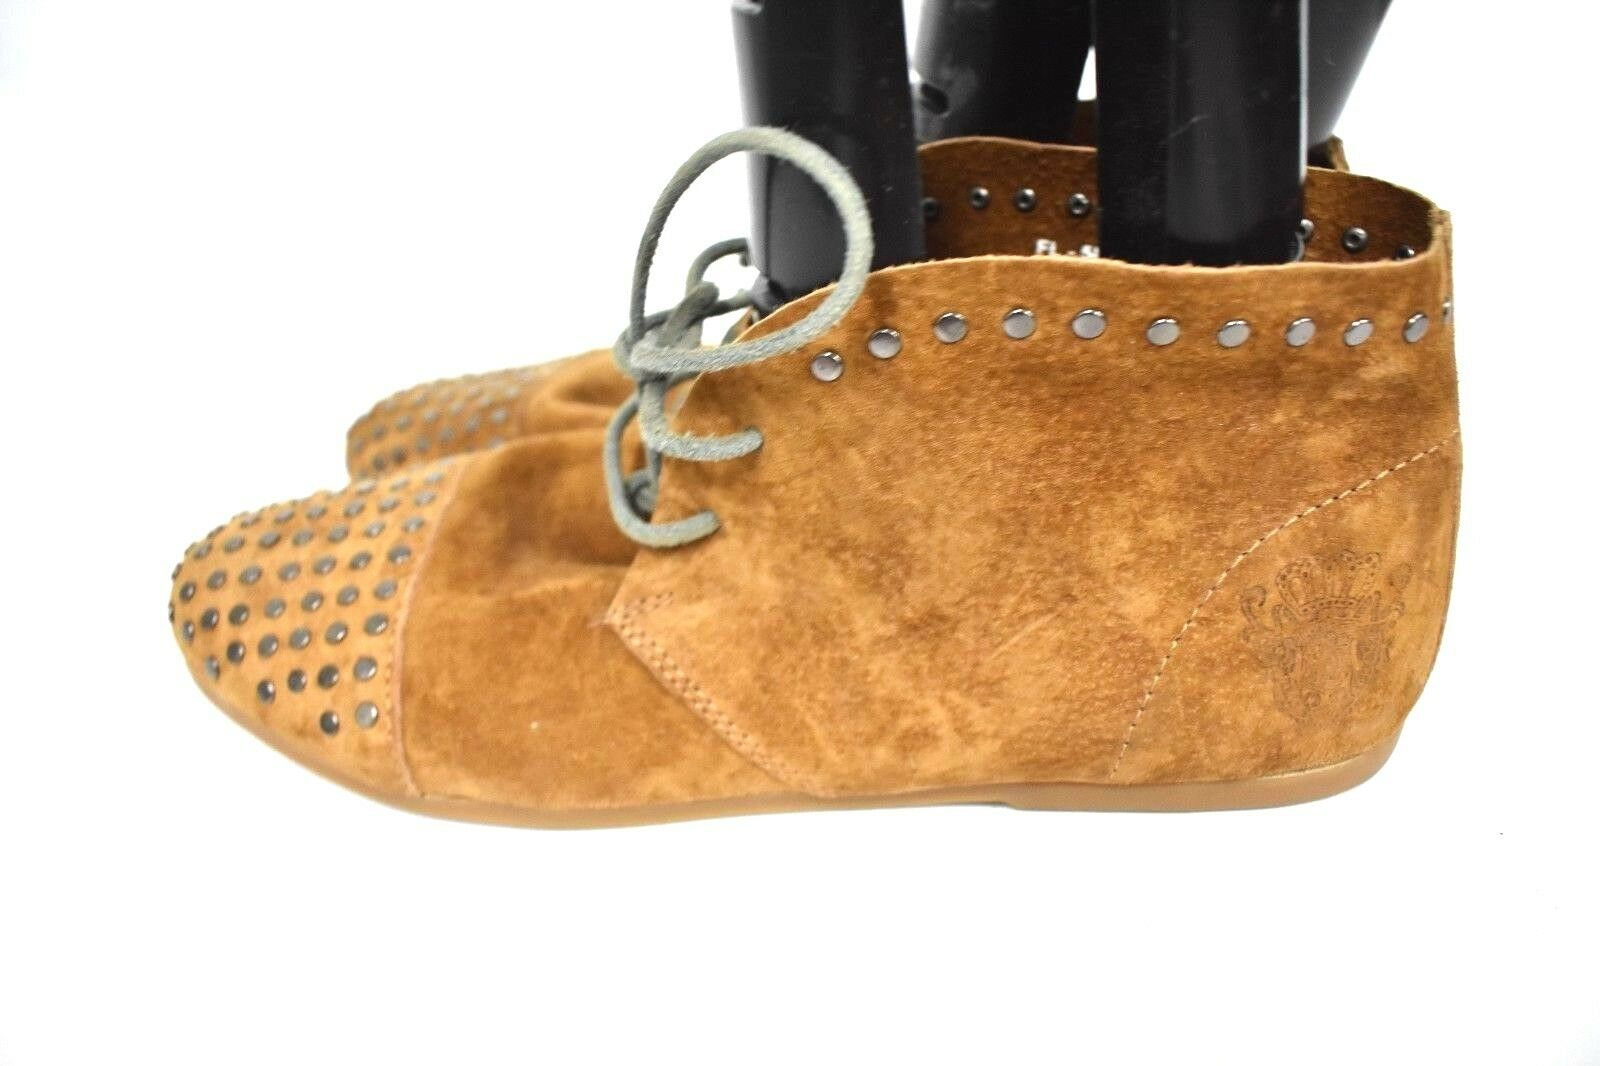 New Blackstone Women's Camel Studded Chukka Boots Booties Suede Size 40-10US